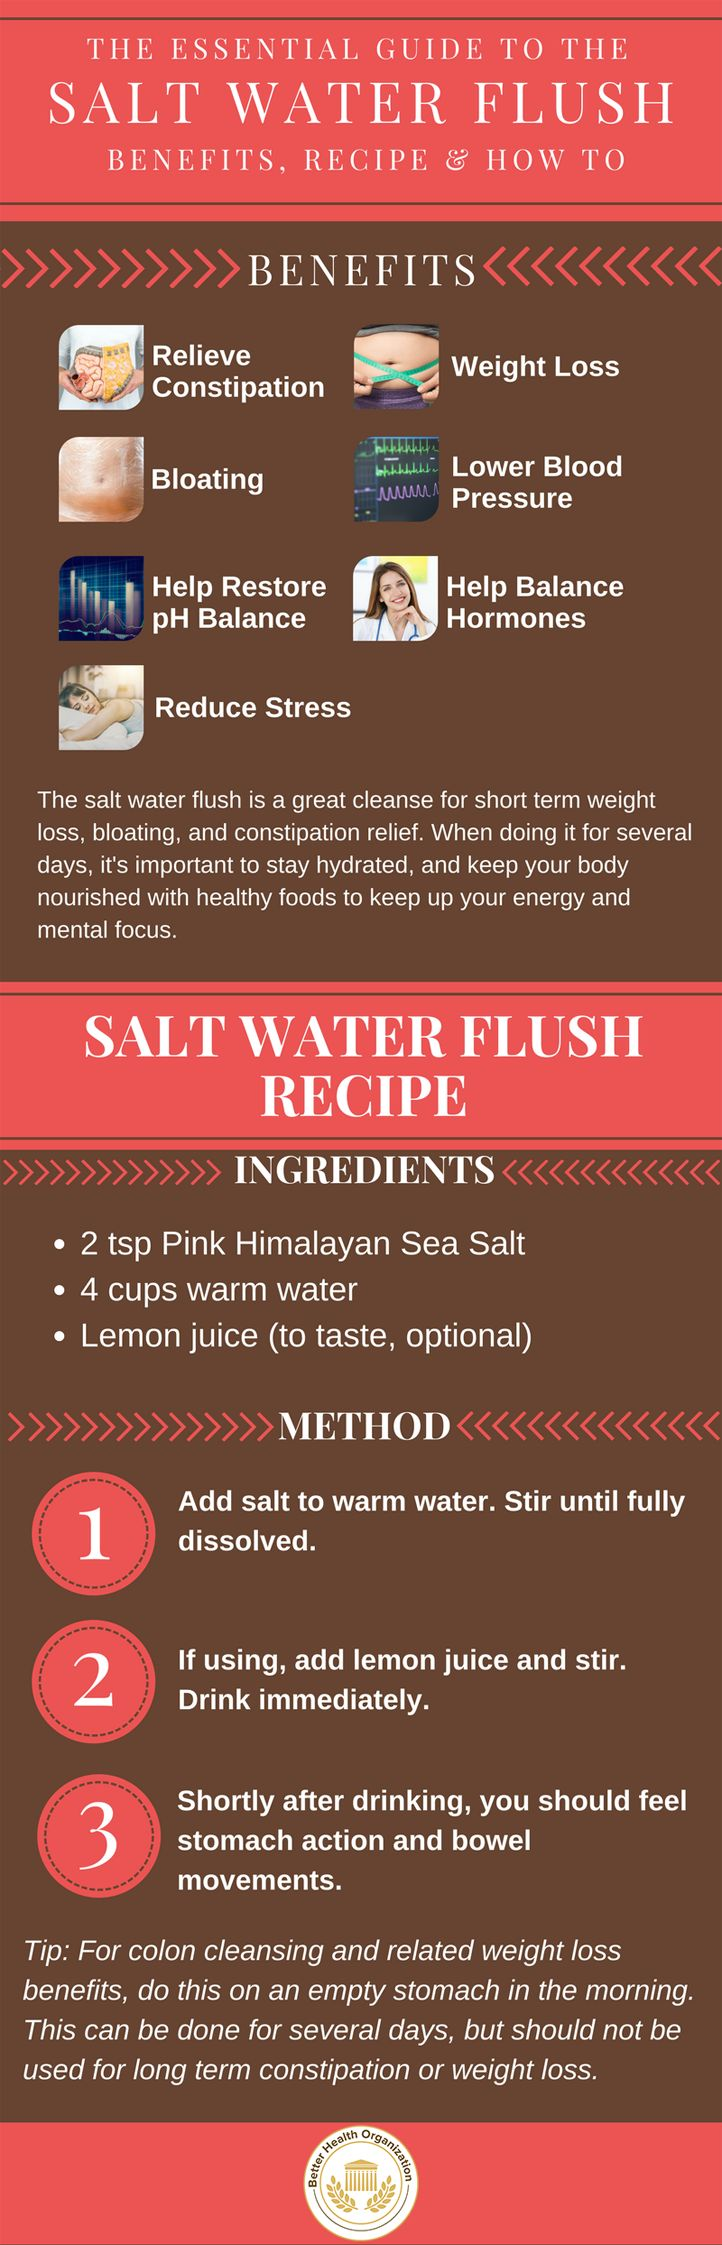 Salt Water Flush Guide: Recipe for Constipation, Weight Loss & More